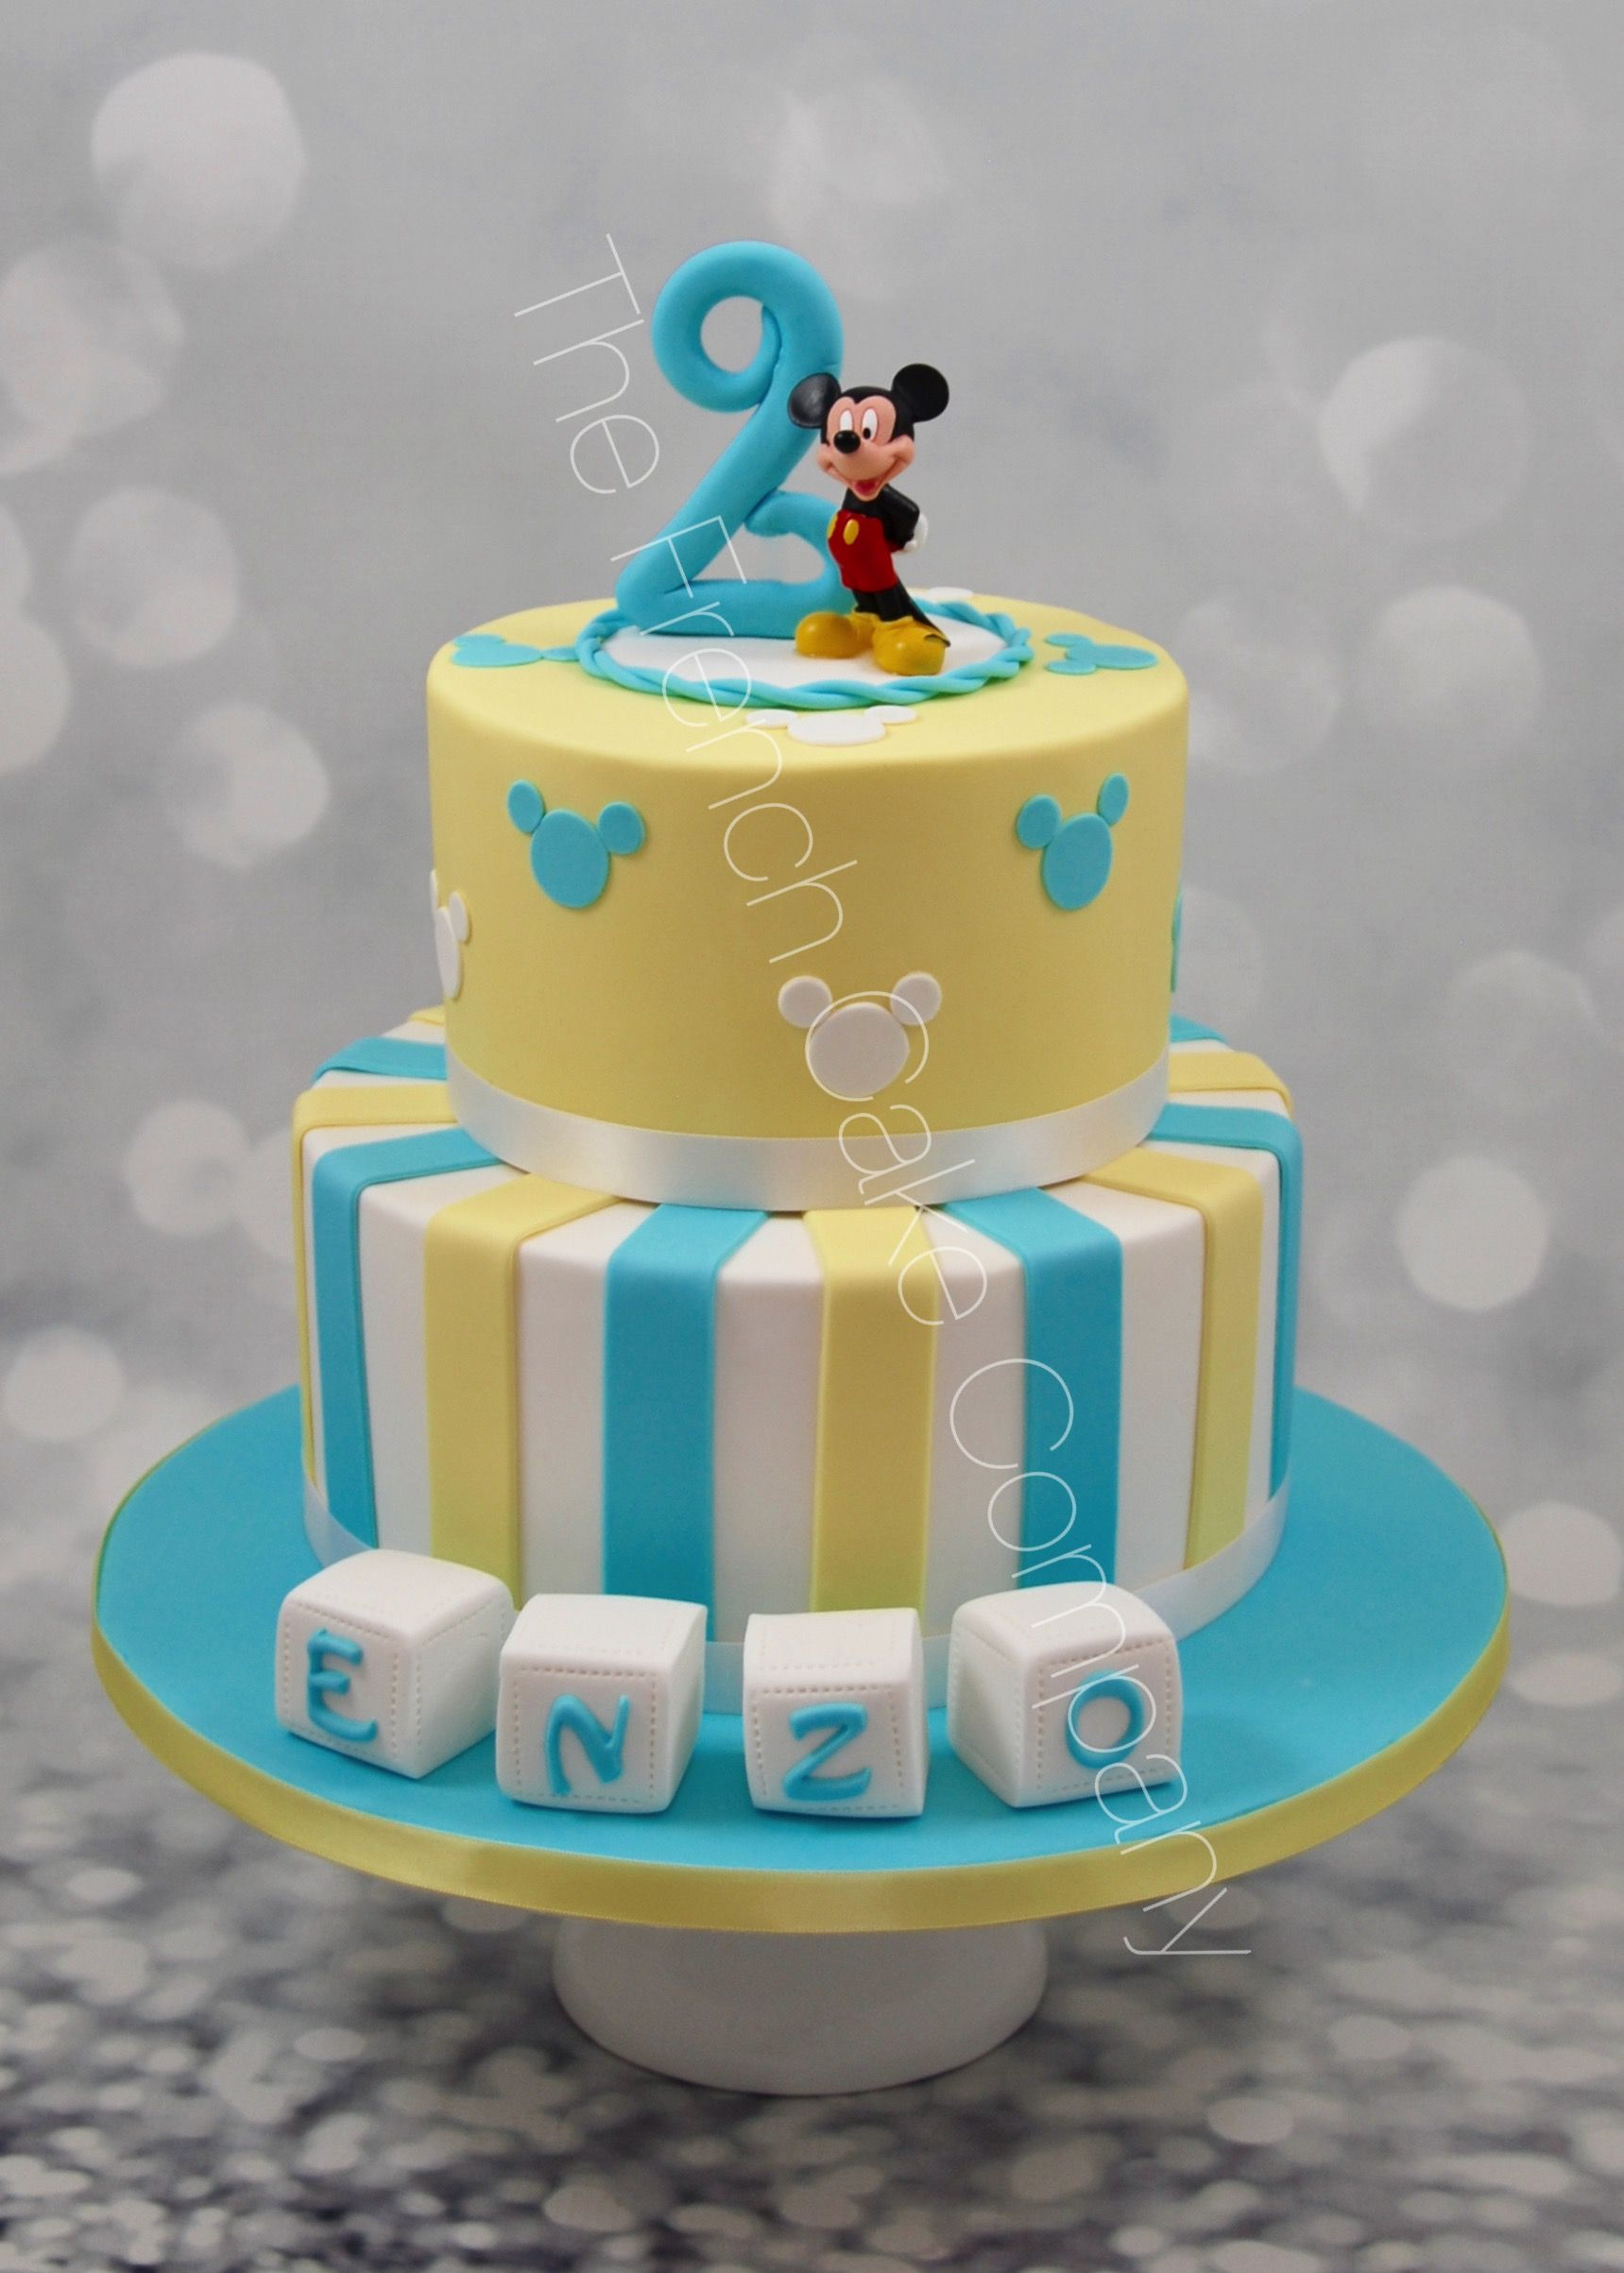 pi ce mont e anniversaire 2 ans th me mickey cake design. Black Bedroom Furniture Sets. Home Design Ideas